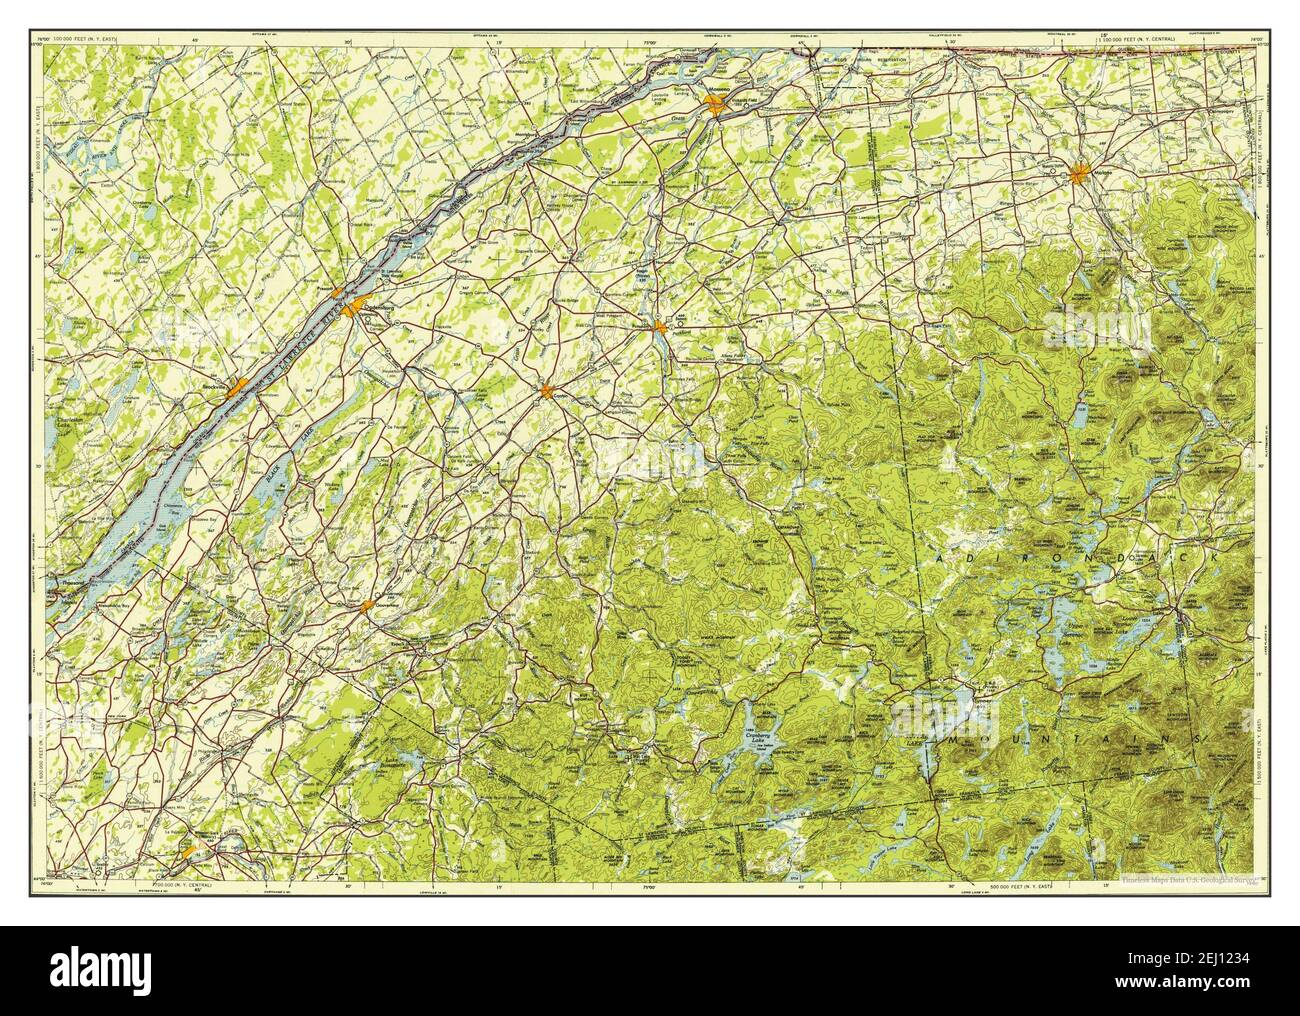 Ogdensburg, New York, map 1953, 1:250000, United States of America by Timeless Maps, data U.S. Geological Survey Stock Photo